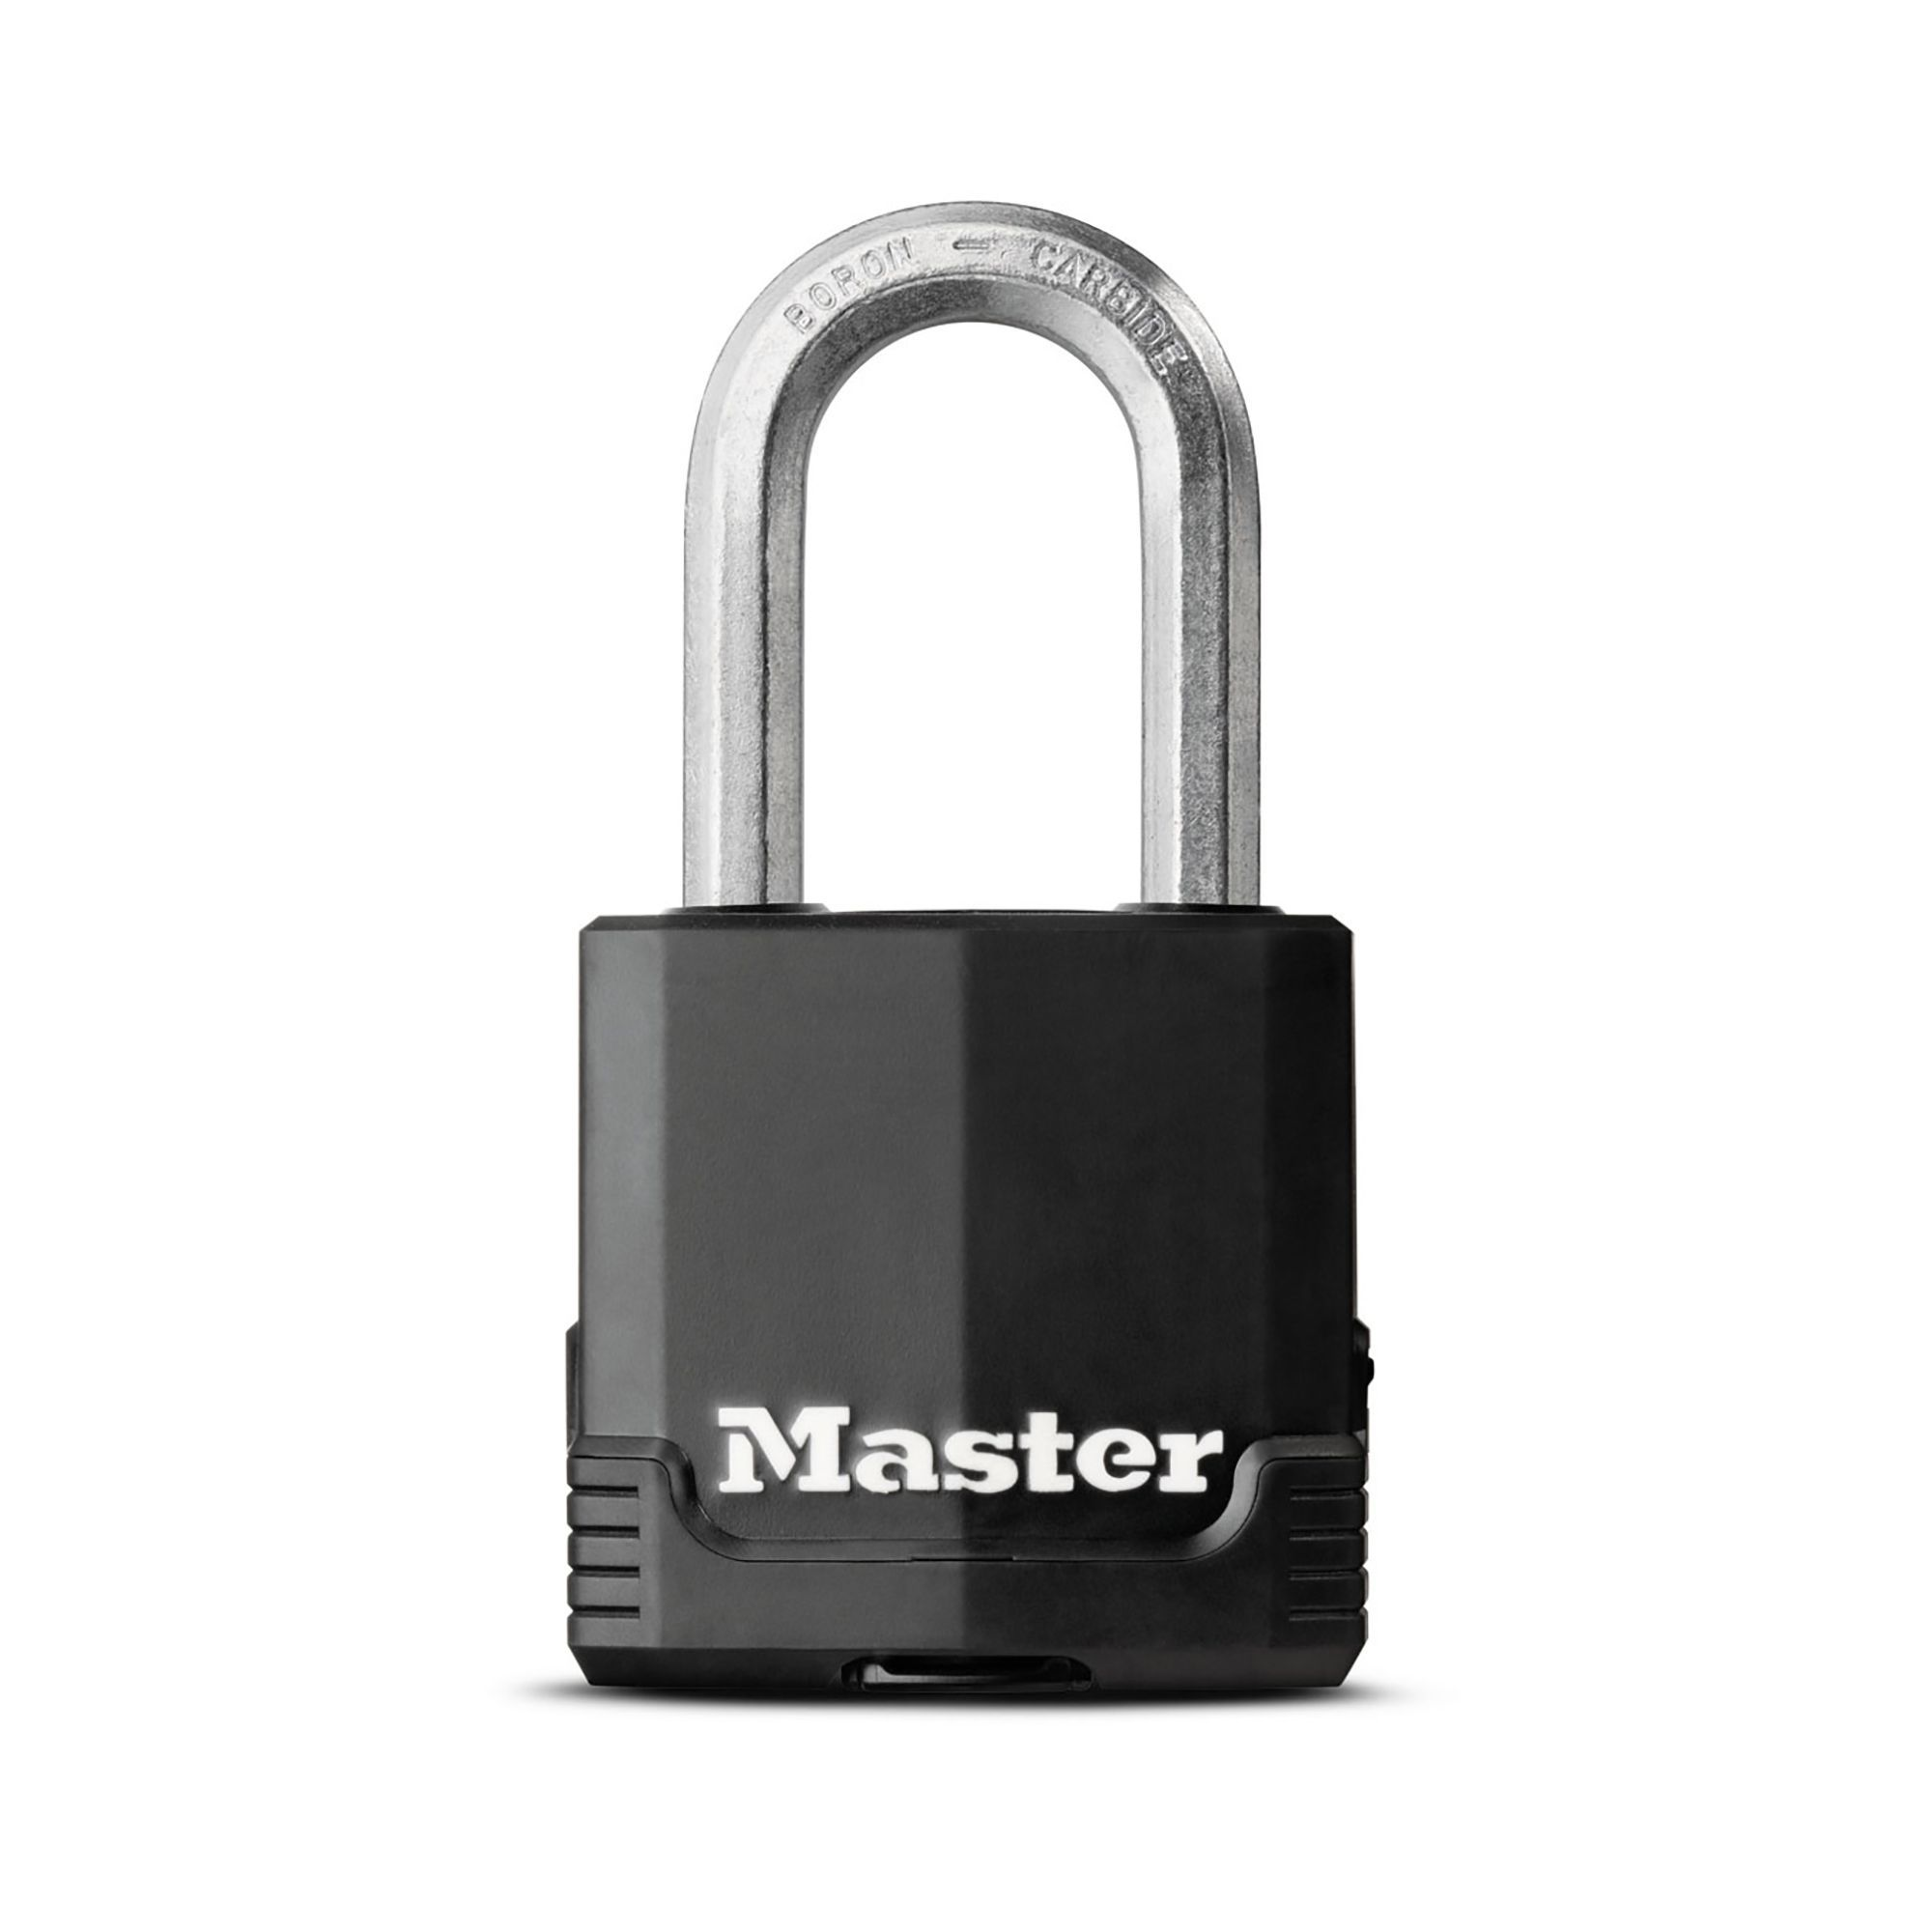 Master Lock Excell Laminated Steel 4 Pin Tumbler Cylinder Open Shackle Padlock (w)45mm